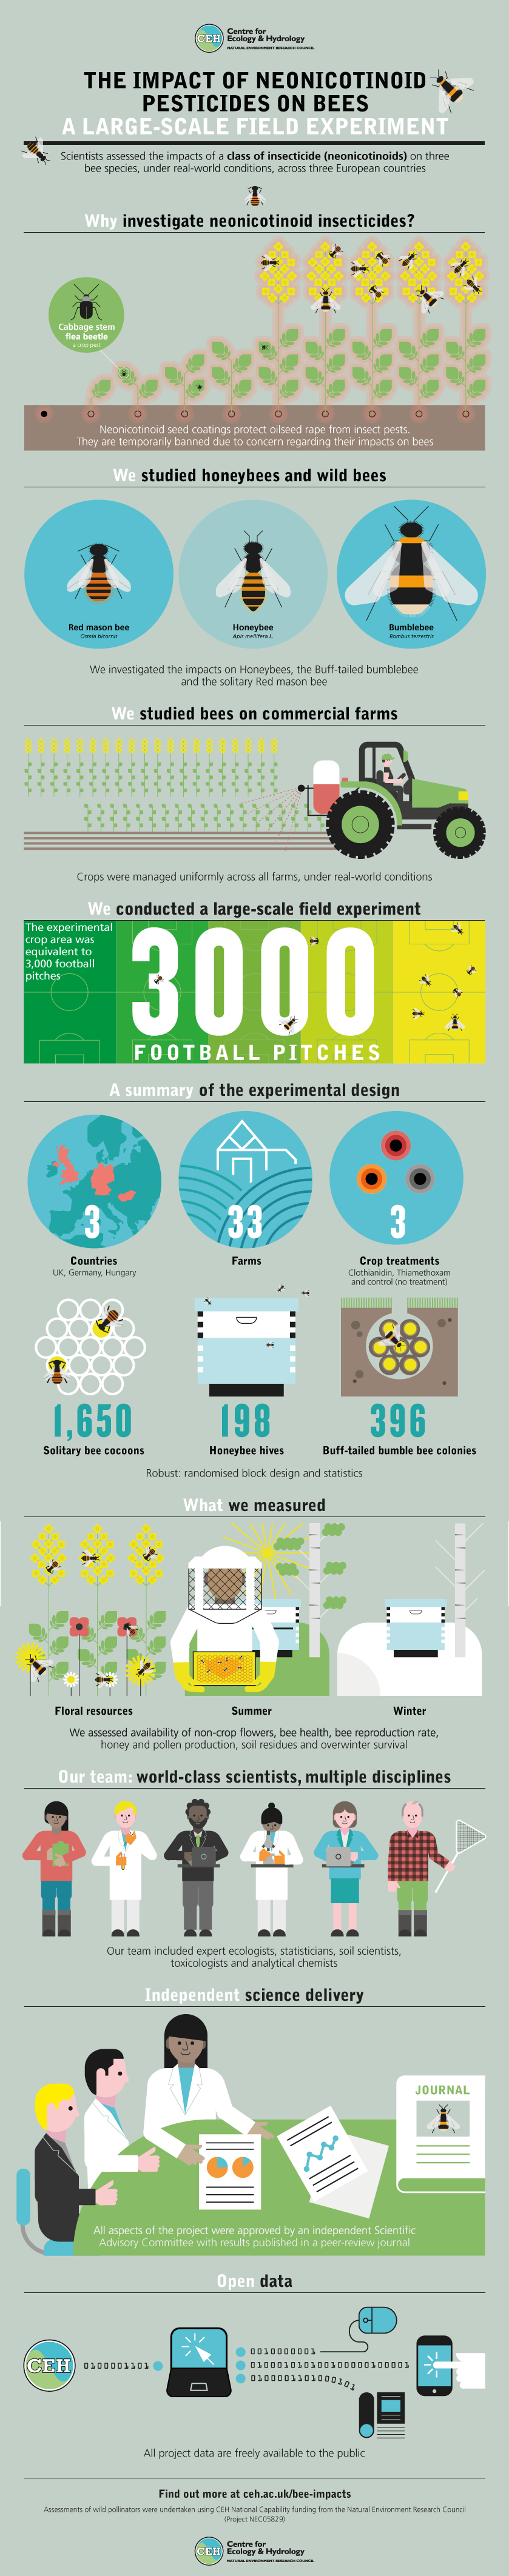 infographic large-scale field experiment impacts of neonicotinoids on bees